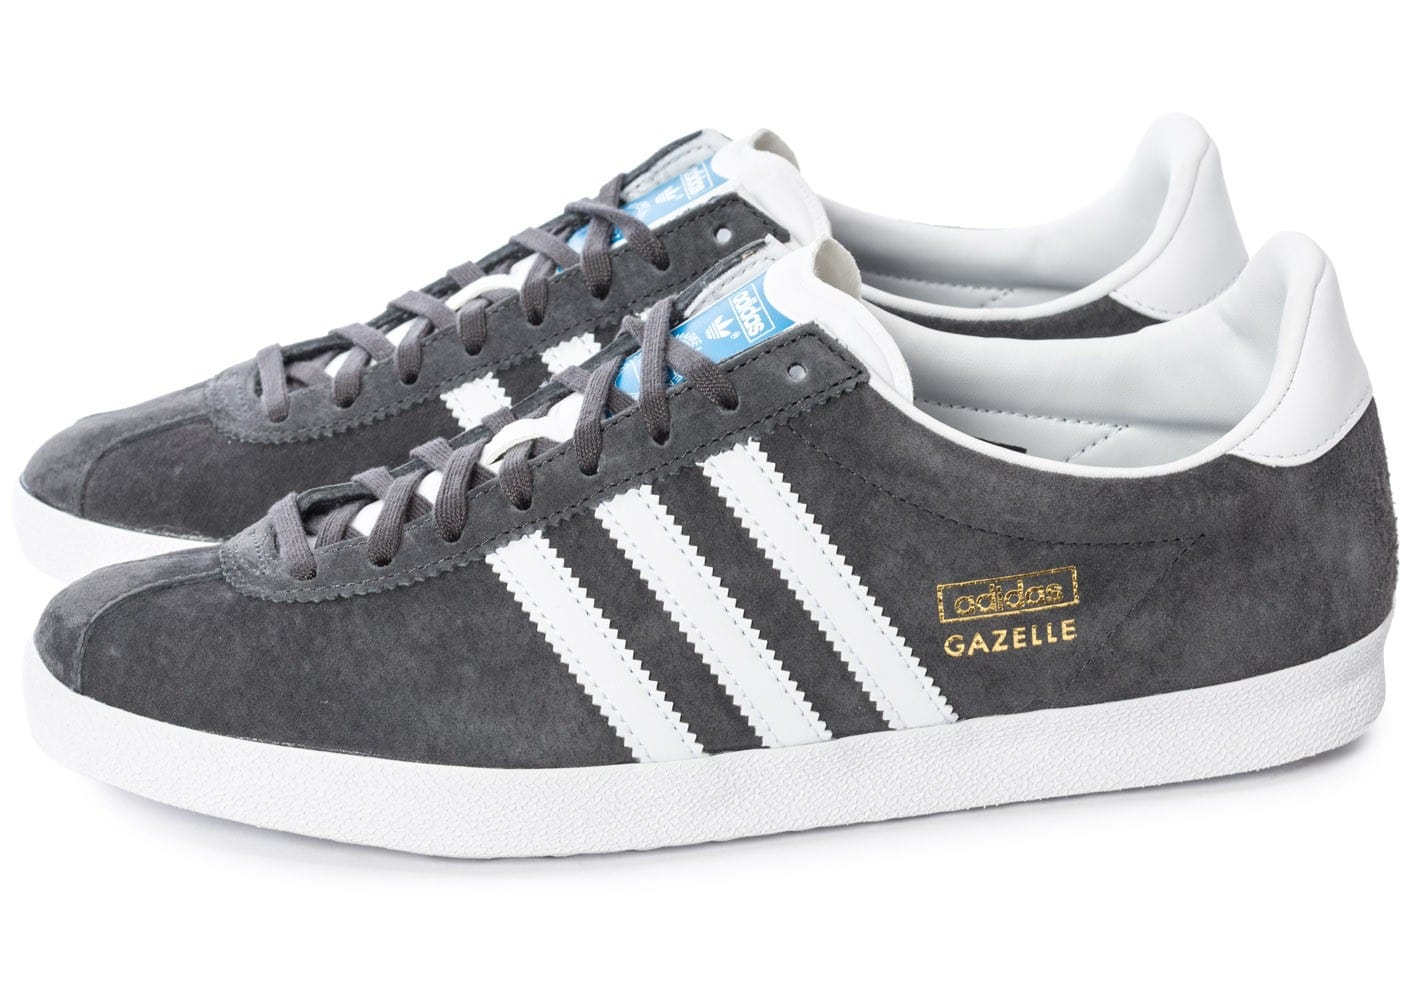 adidas Gazelle OG Grise - Chaussures Baskets homme - Chausport